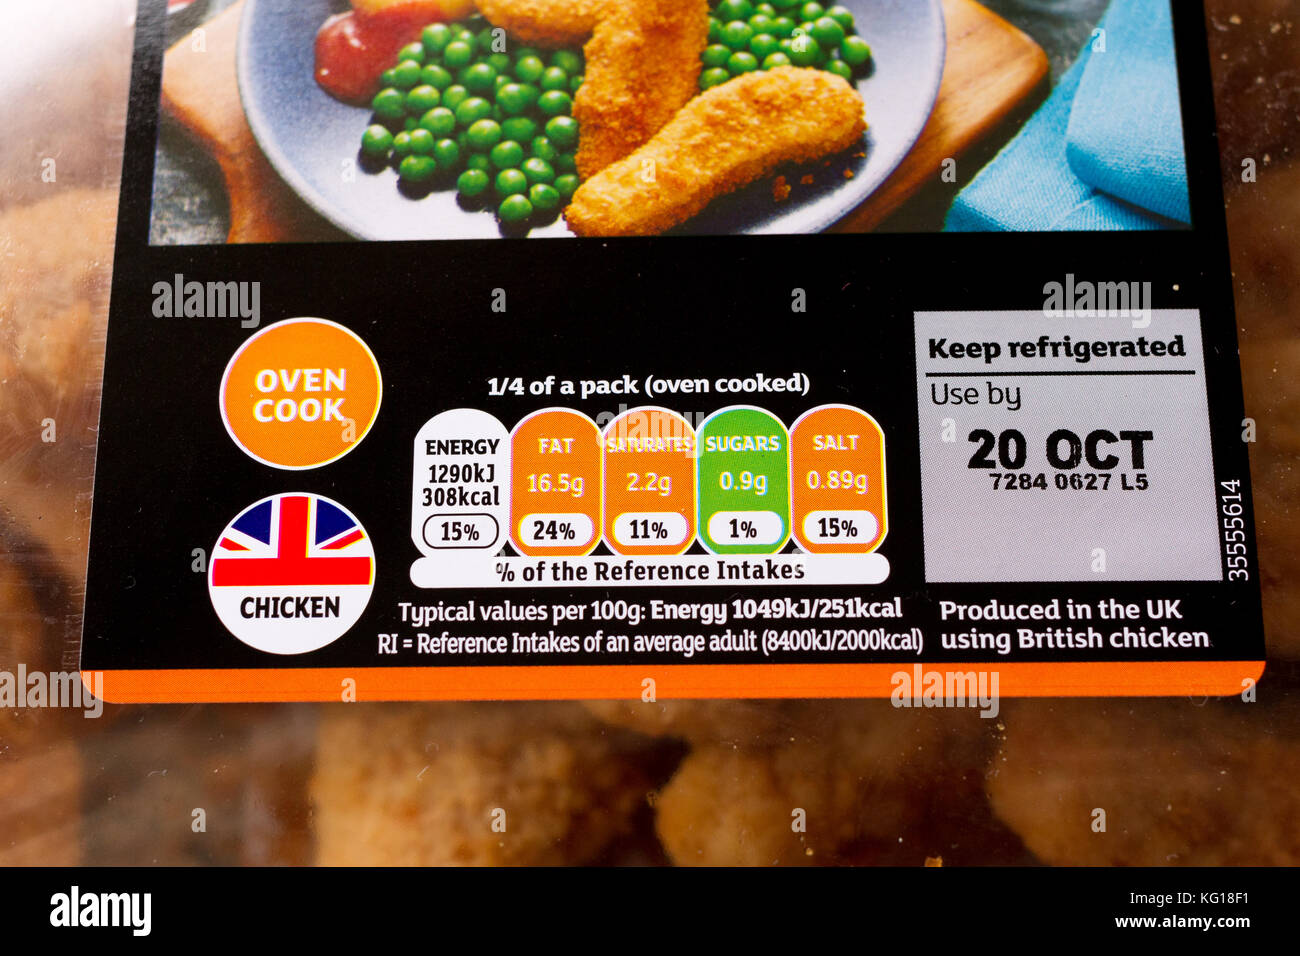 Close up of food label nutritional information & use by date on a pack of Sainsbury's chicken goujons - Stock Image